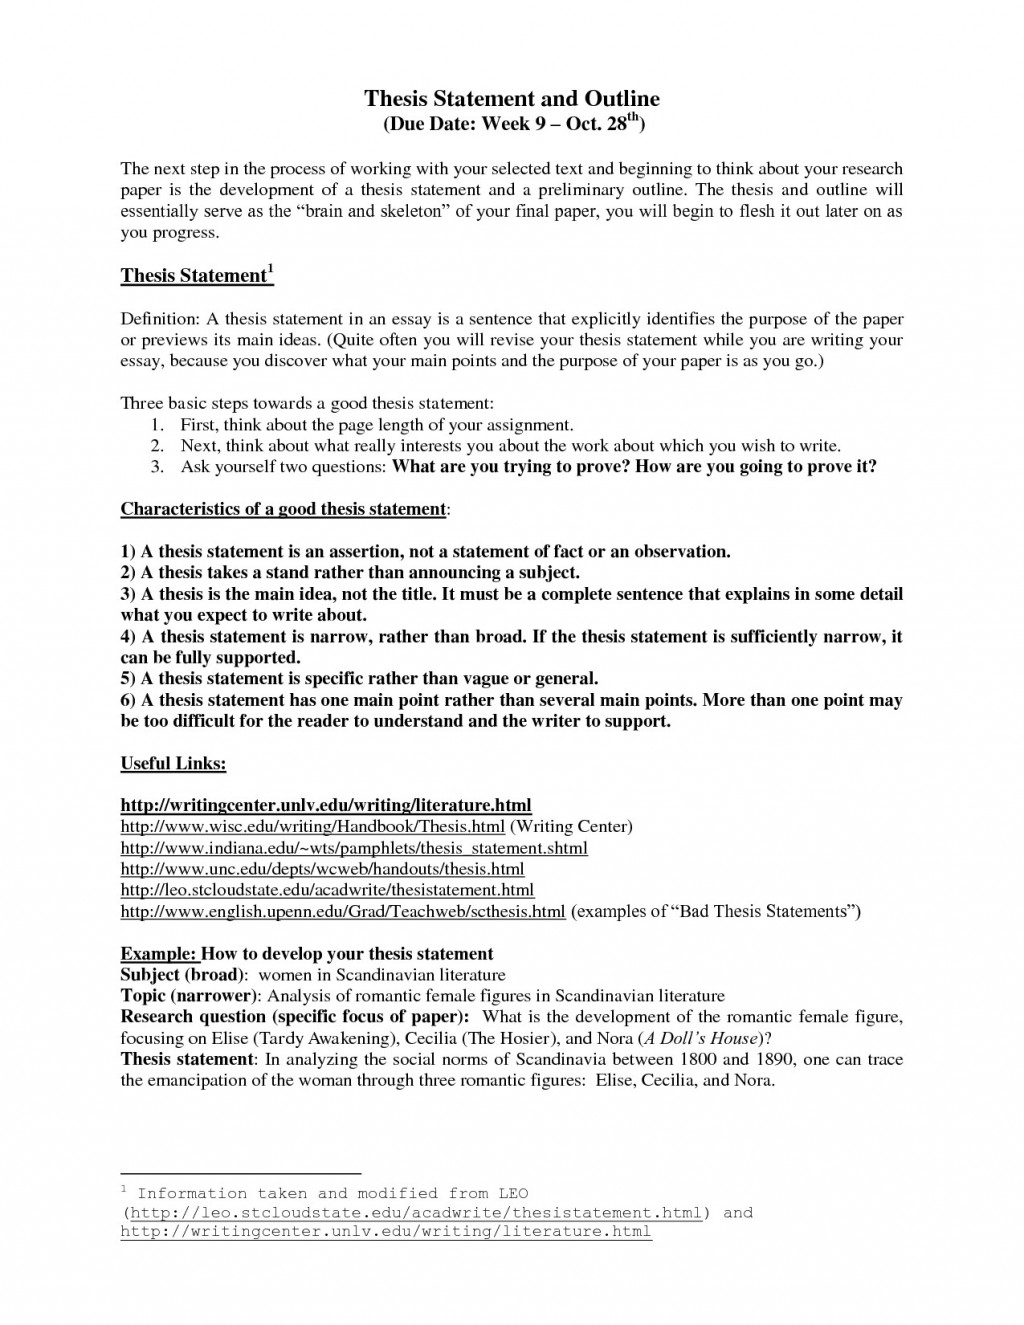 003 Essay Example Cute Easy Thesis Statement Examples Pics For Your Argumentative Writing Structure How To Write Of On Independence Day Tips Topics Website Pollution Grammar Checker Frightening An Effective In Must I Present Both Sides The Issue Brainly Large